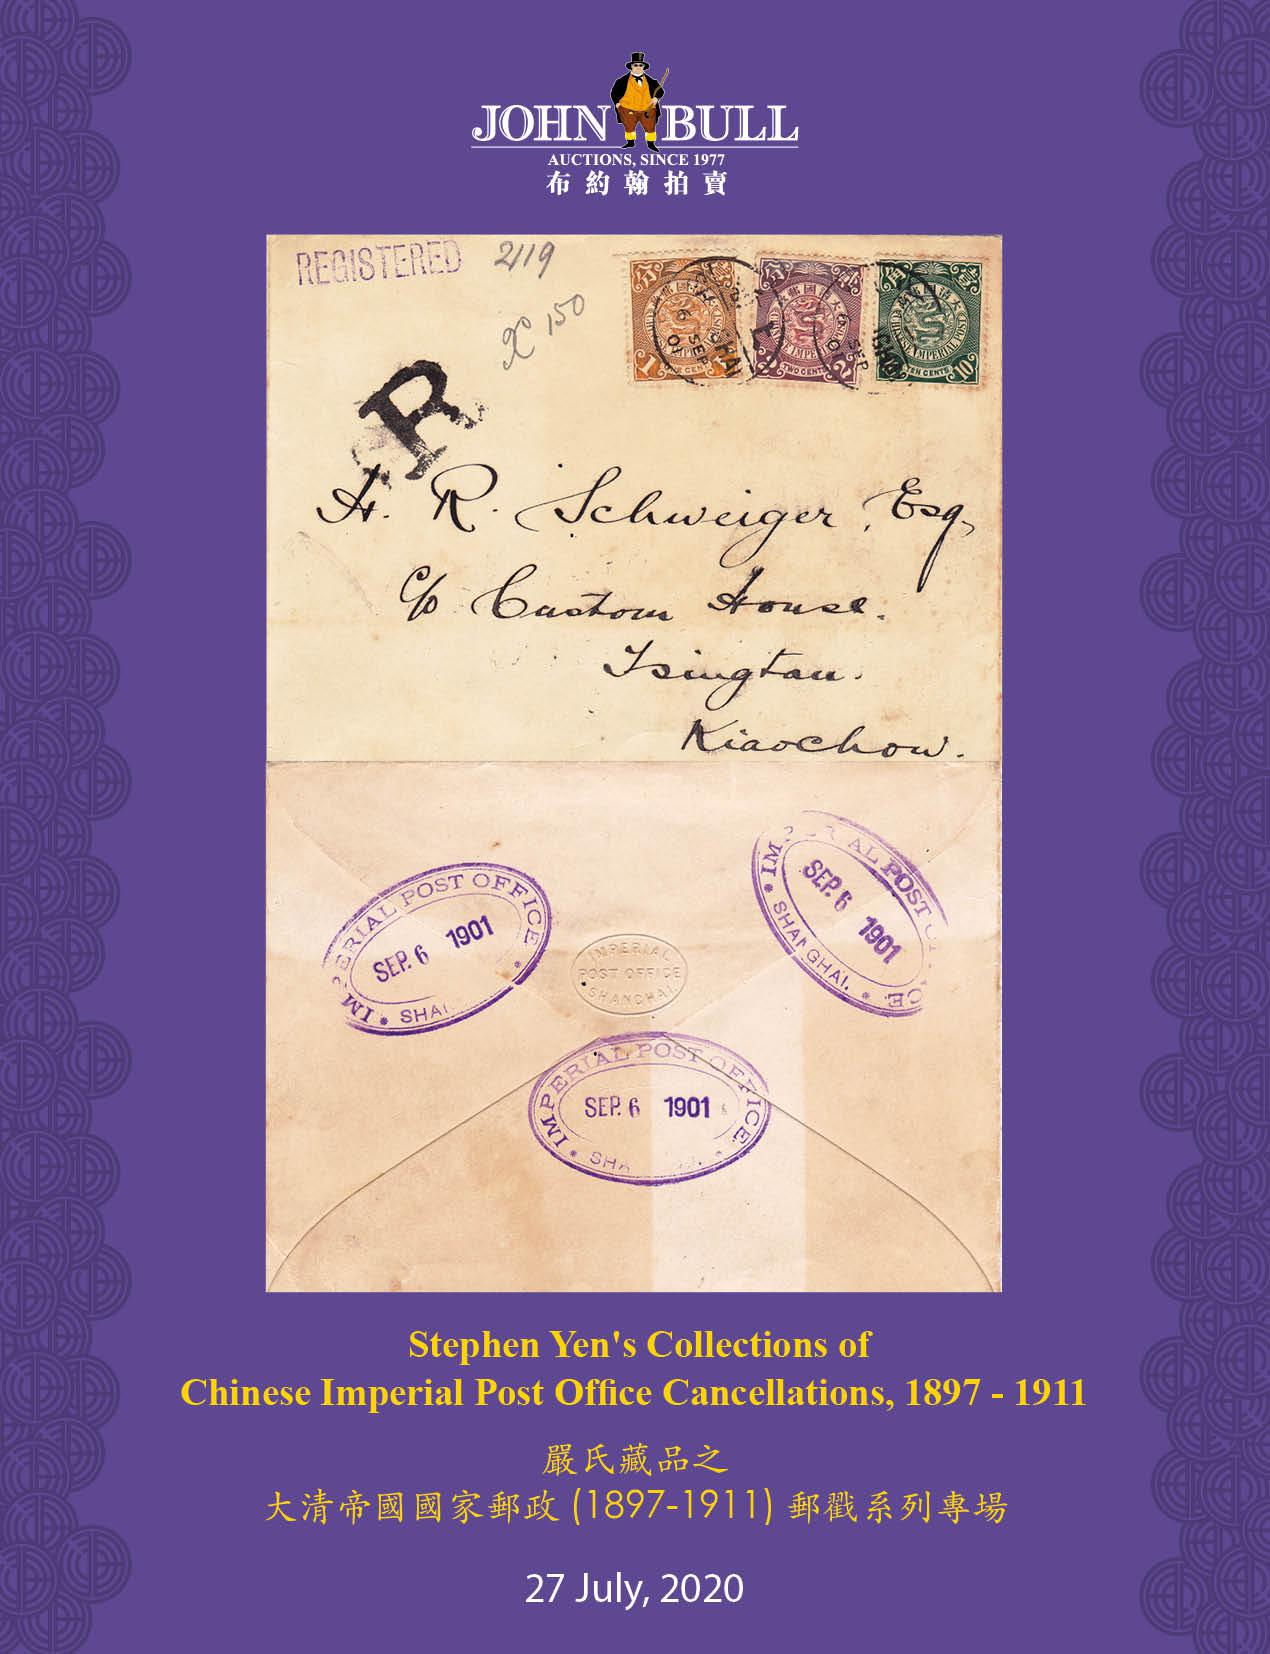 Stephen Yen's Collections of Chinese Imperial Post Office Cancellations, 1897-1911